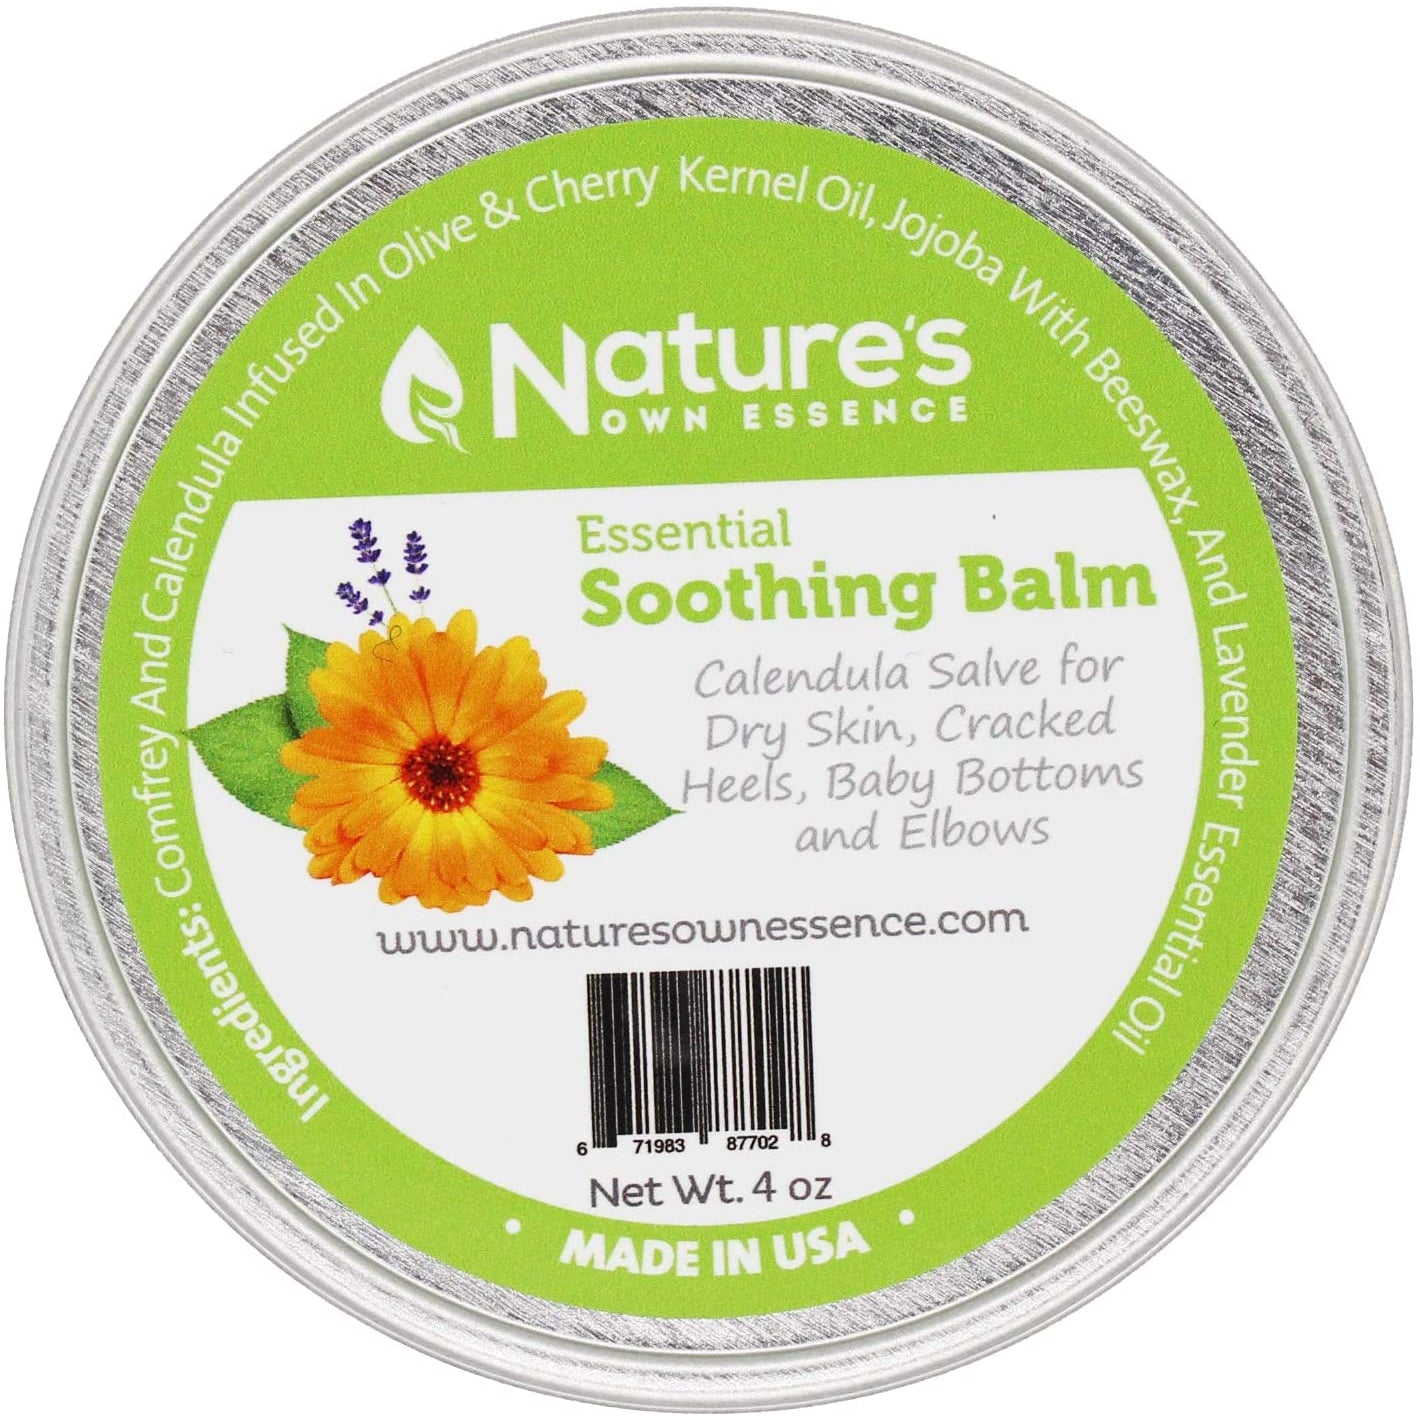 Nature's Own Essence Essential Soothing Balm - Nature's Own Essence